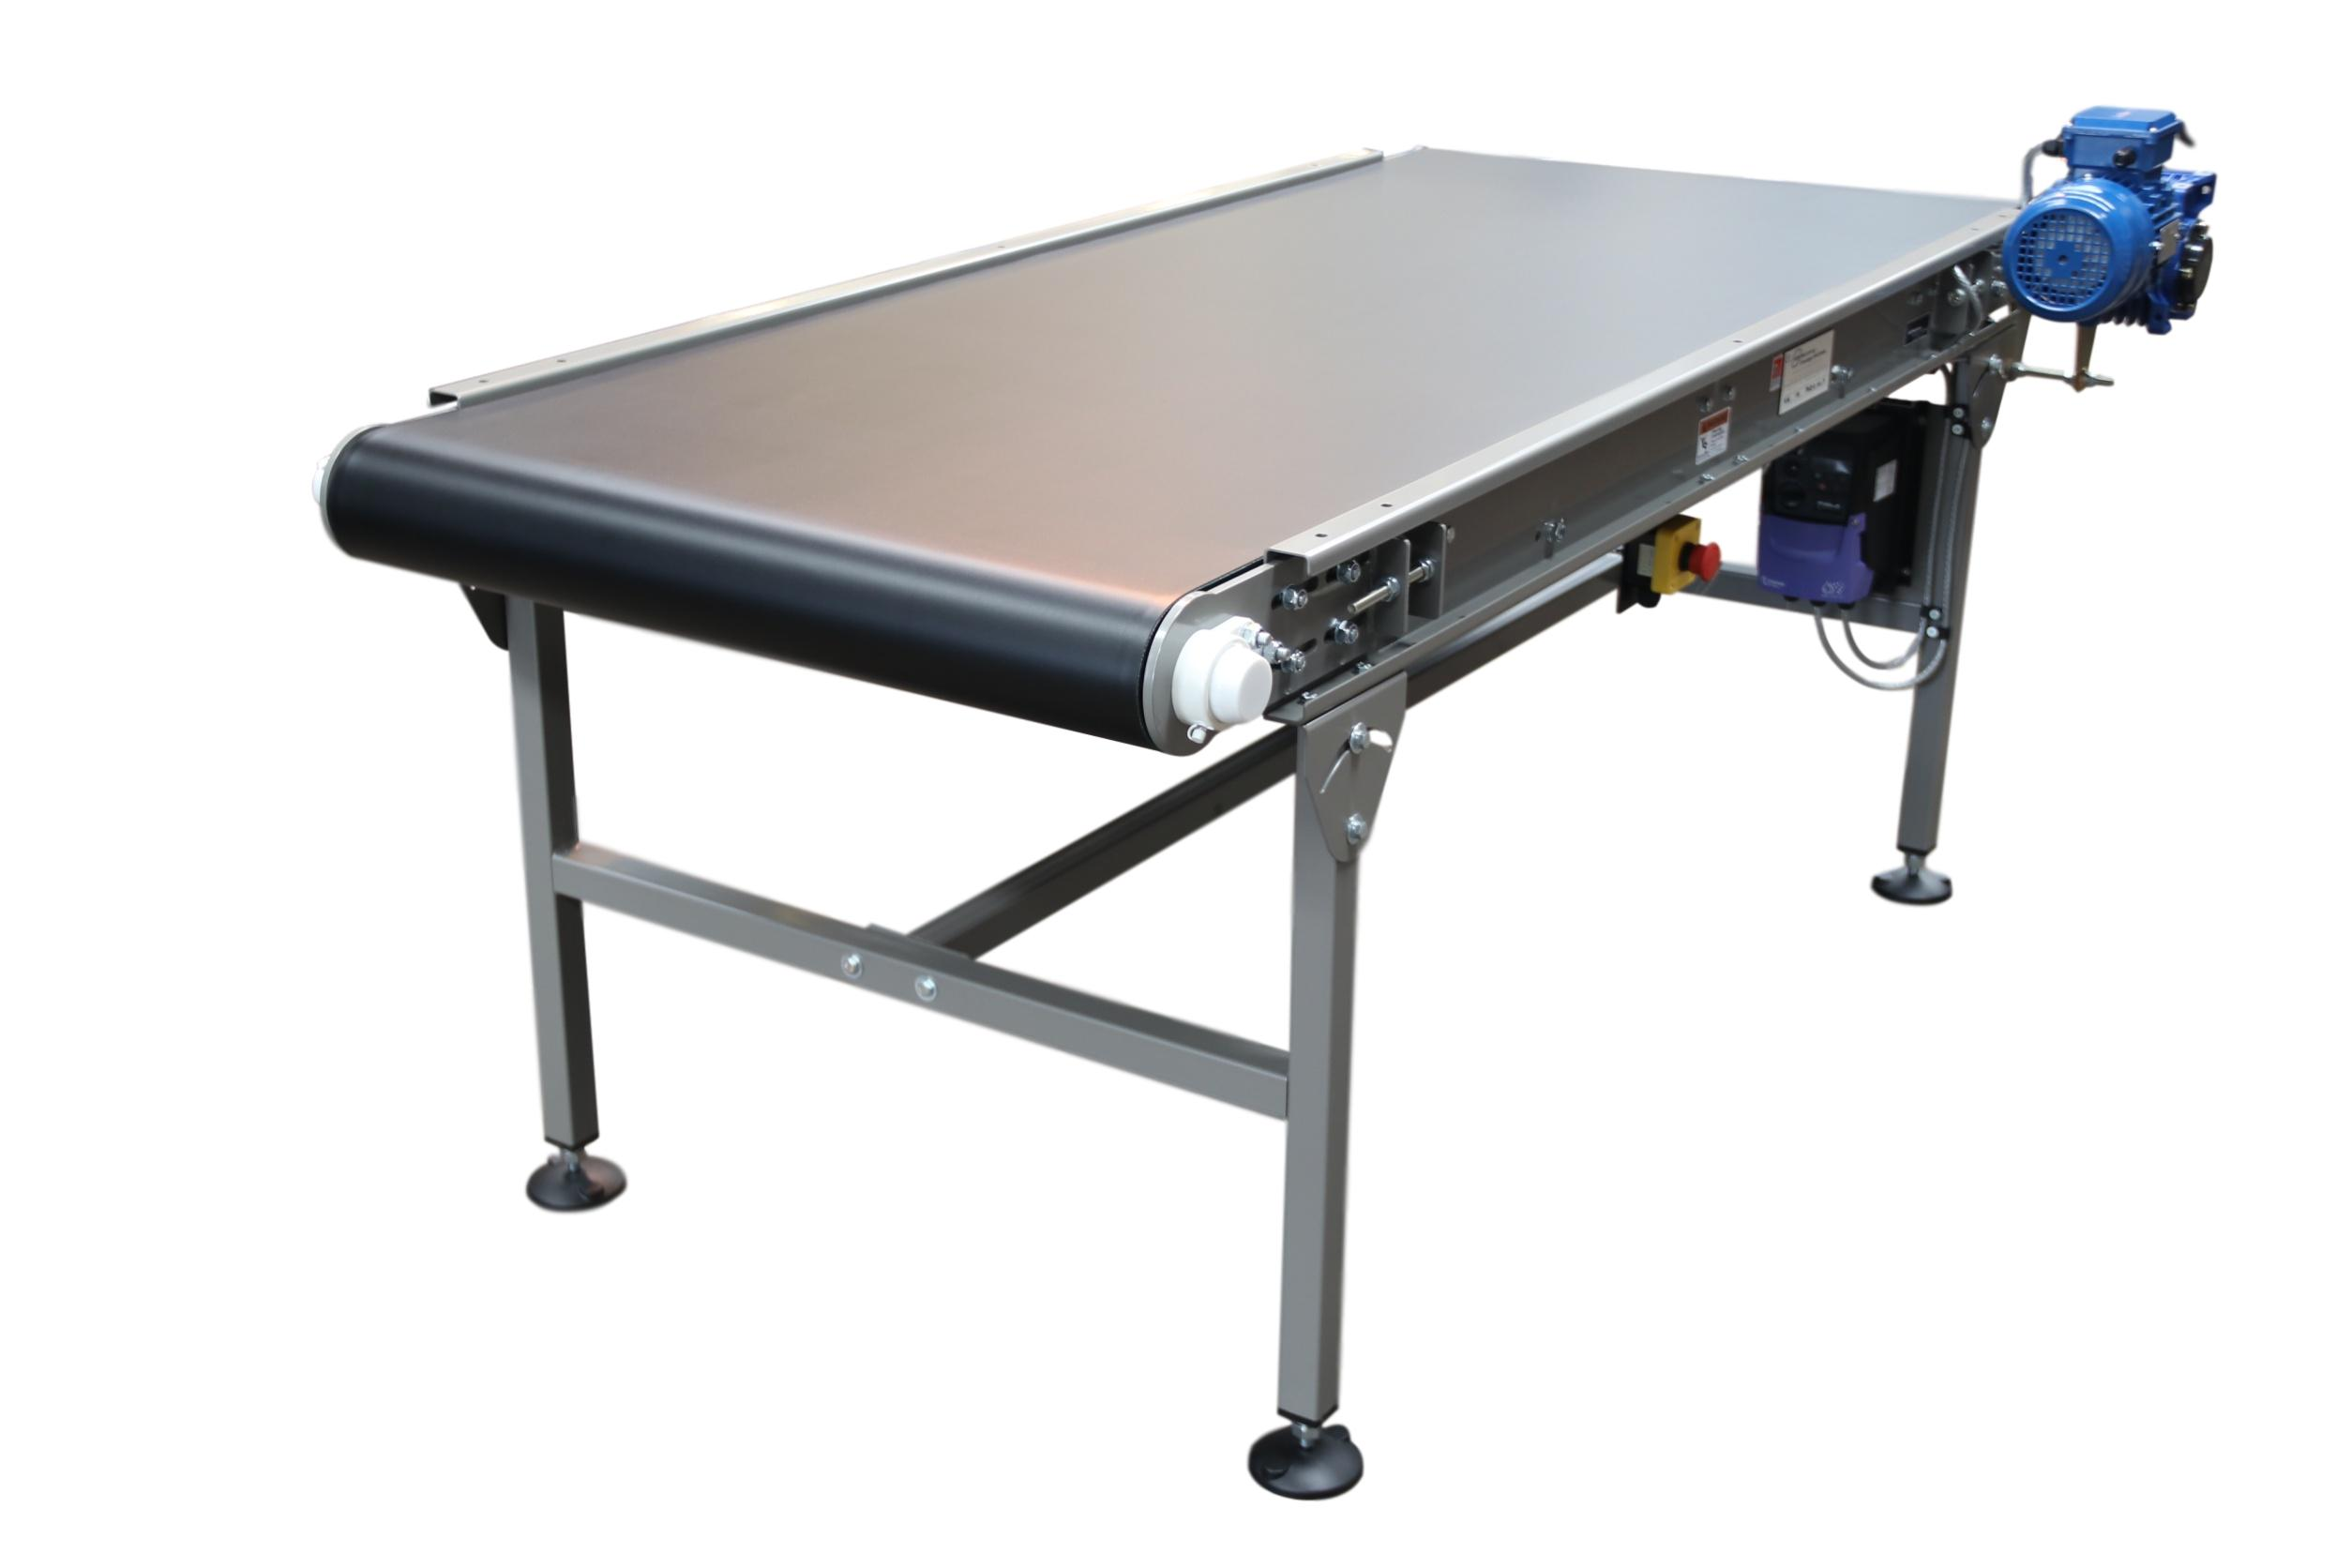 BELT CONVEYOR MANUFACTURERS CONVEYOR SUPPLIERS CONVEYOR PRICES BUY CONVEYORS ONLINE